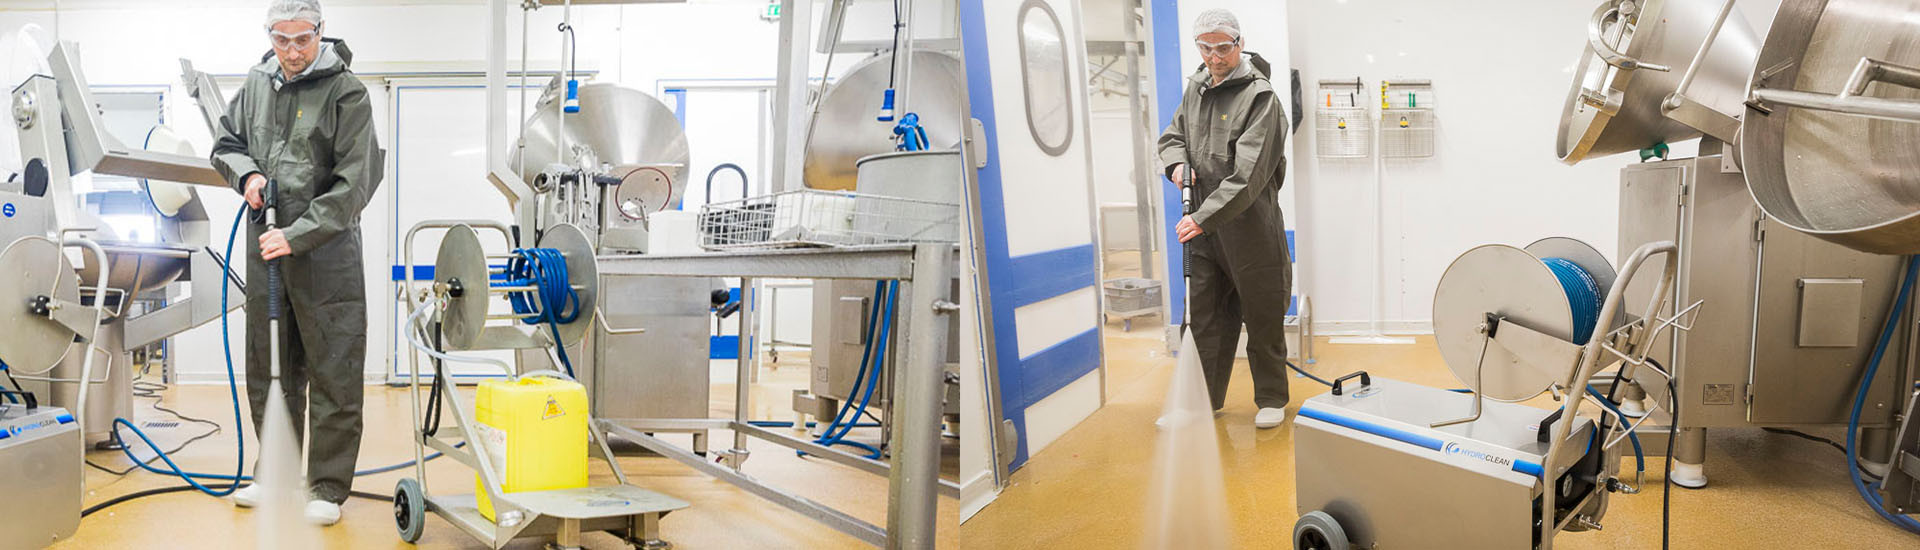 Hydroclean cleaner for food industry